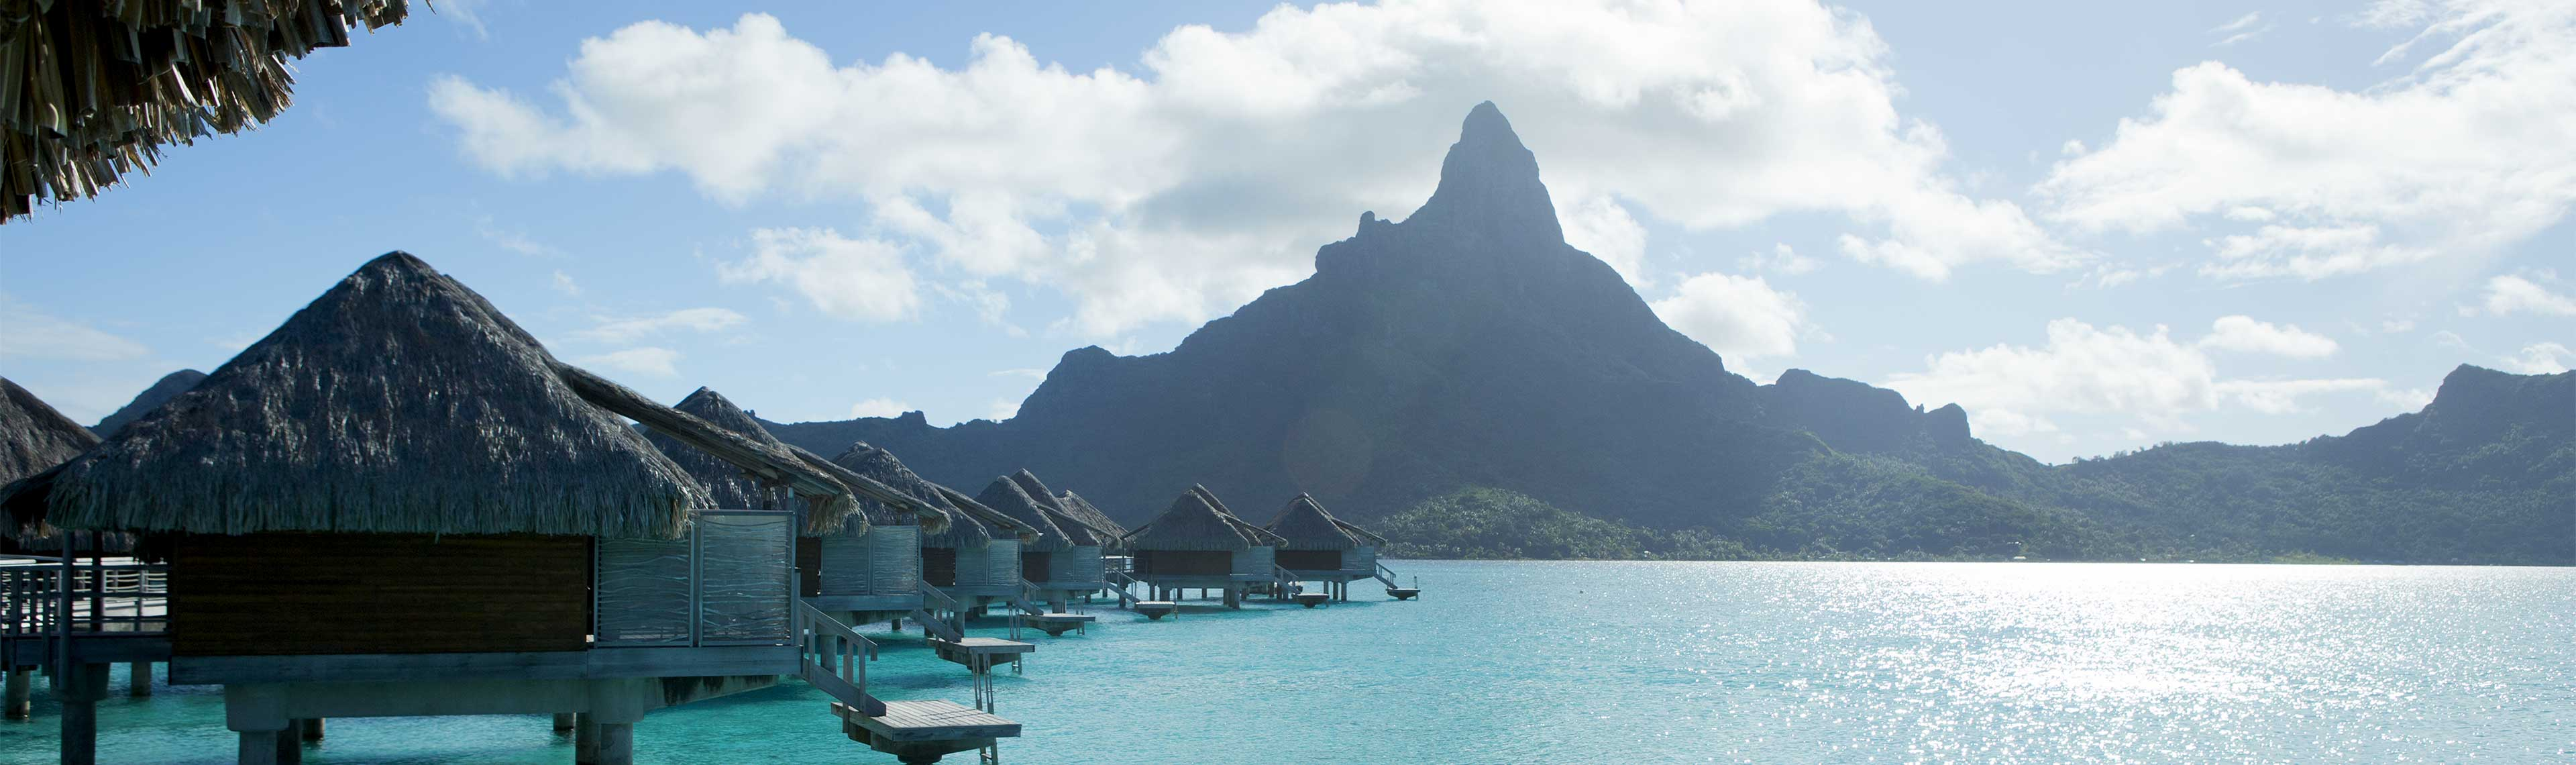 bora bora location